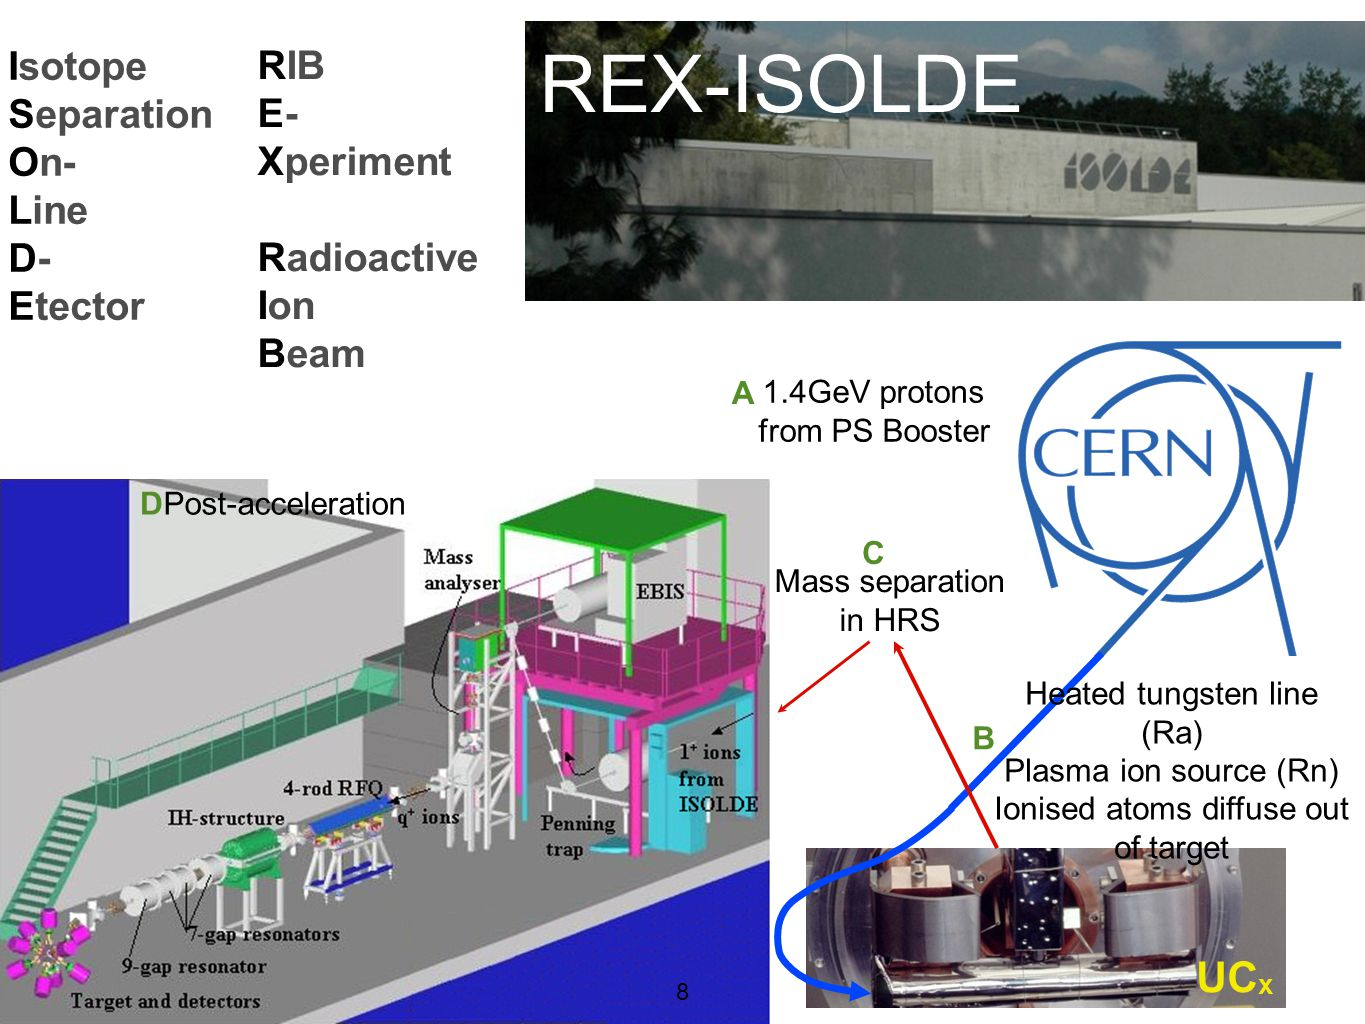 REX-ISOLDE UCx Isotope Separation On- Line D- Etector RIB E- Xperiment